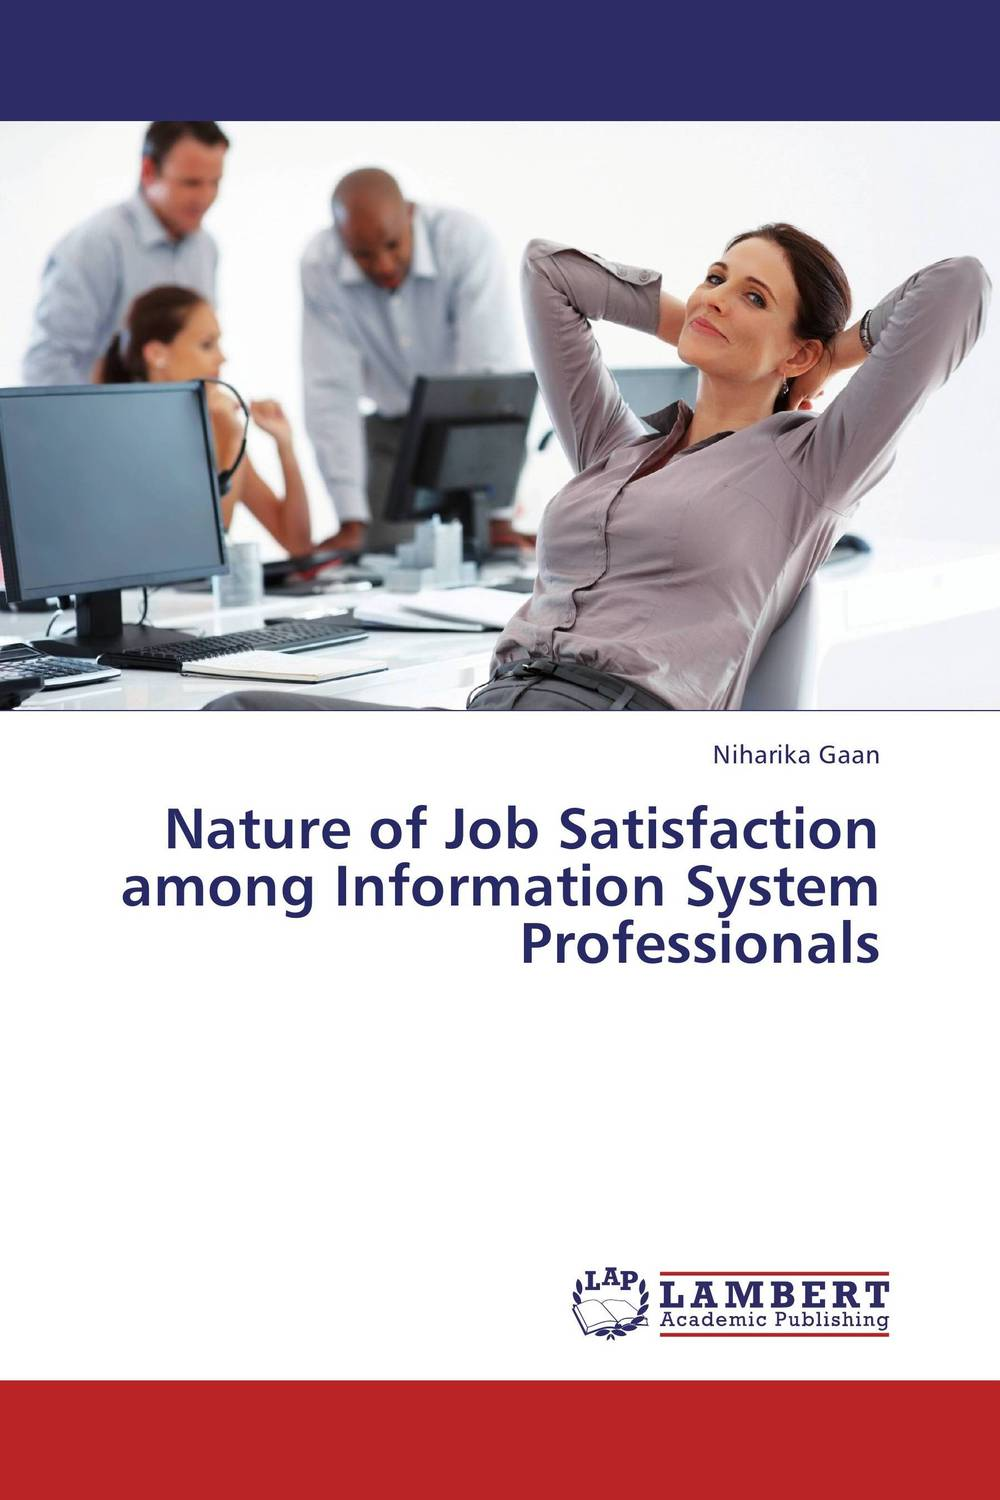 Nature of Job Satisfaction among Information System Professionals burnout ways of coping and job satisfaction among doctors